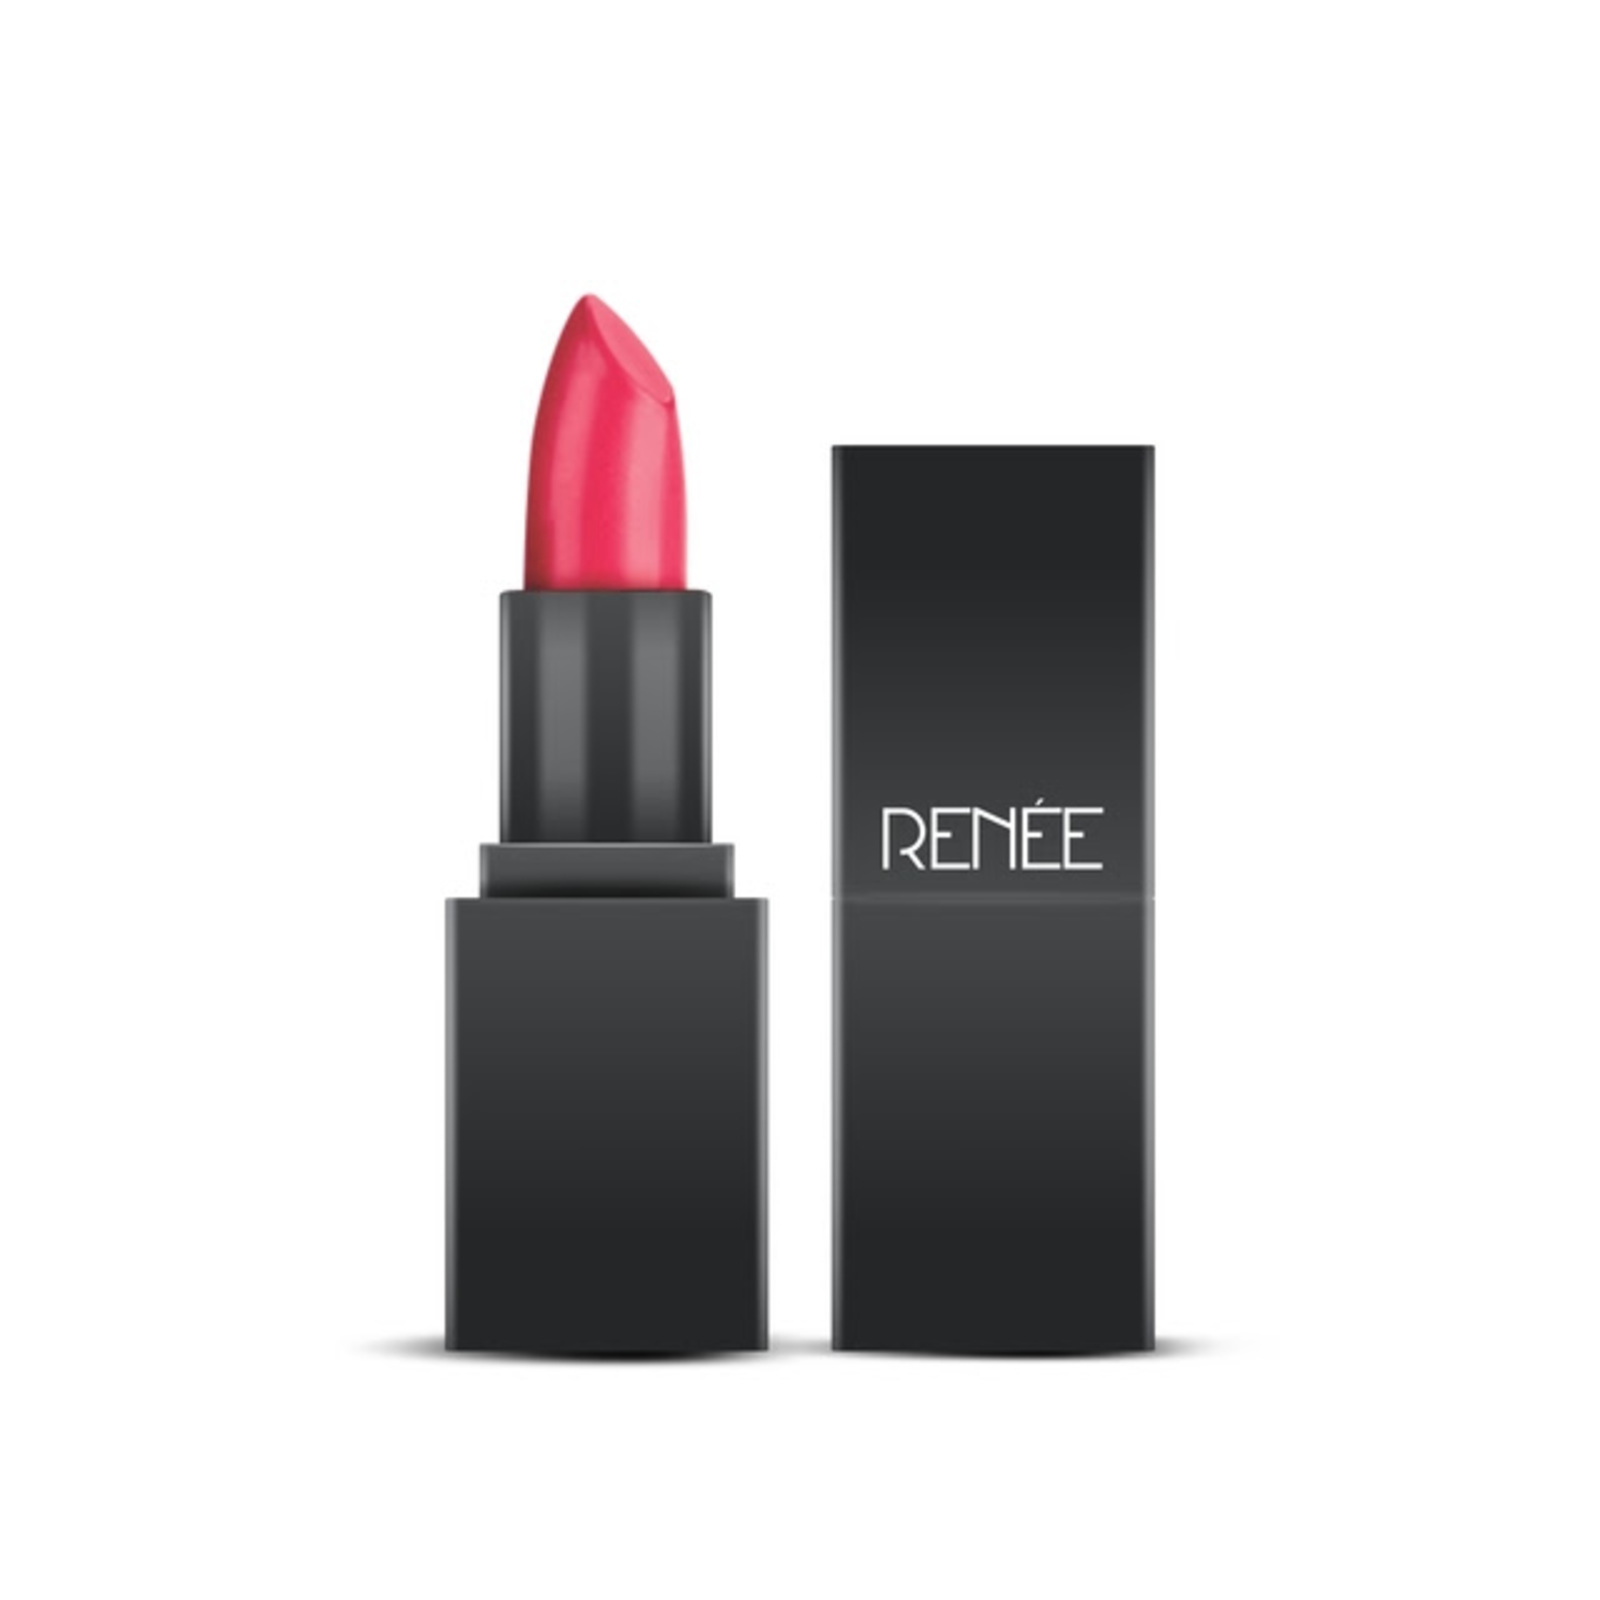 RENEE Mini Creme Lipstick (Pop the Cherry)